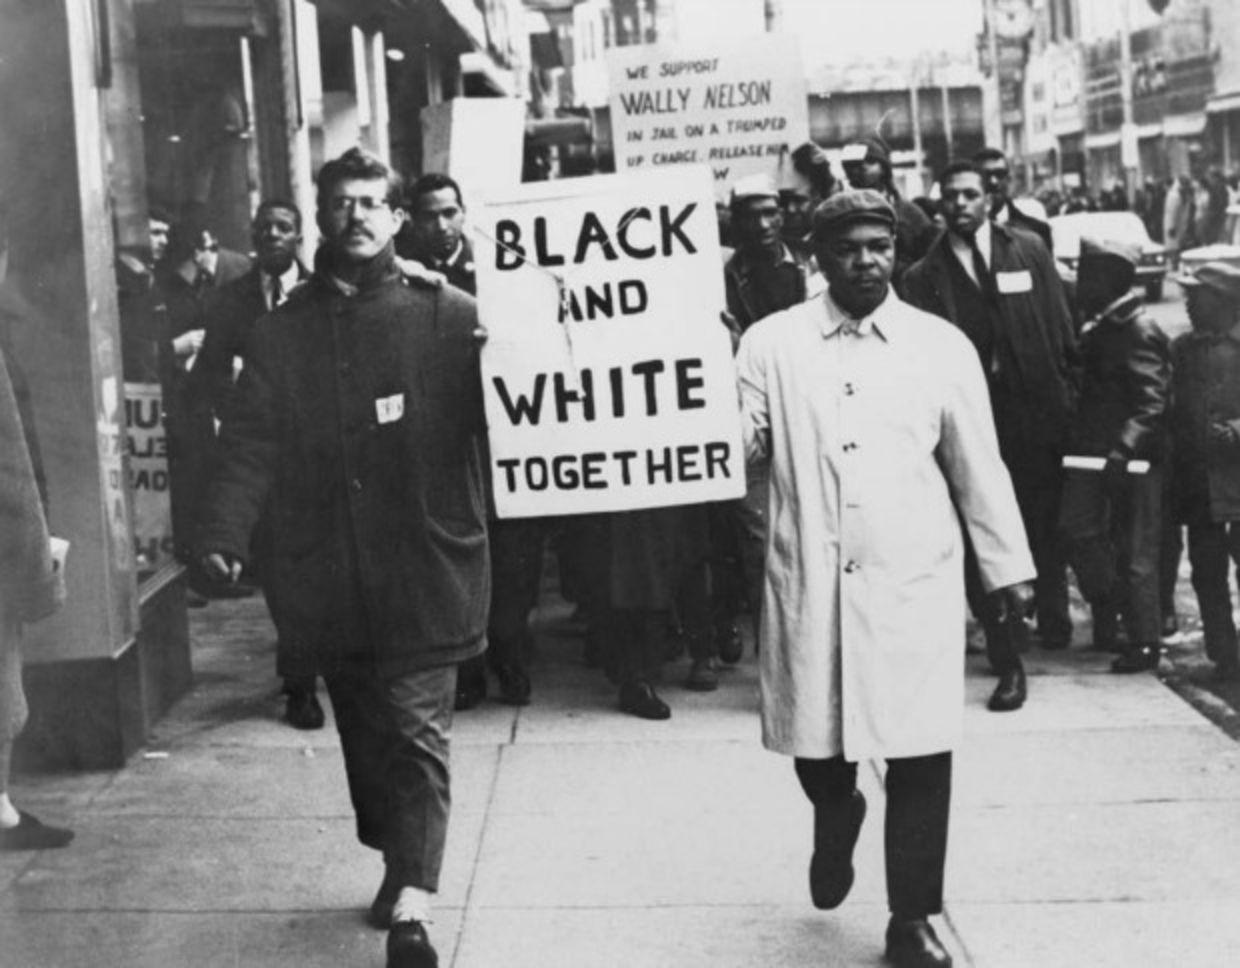 Black and whiter person holding sign in solidarity during civil rights march